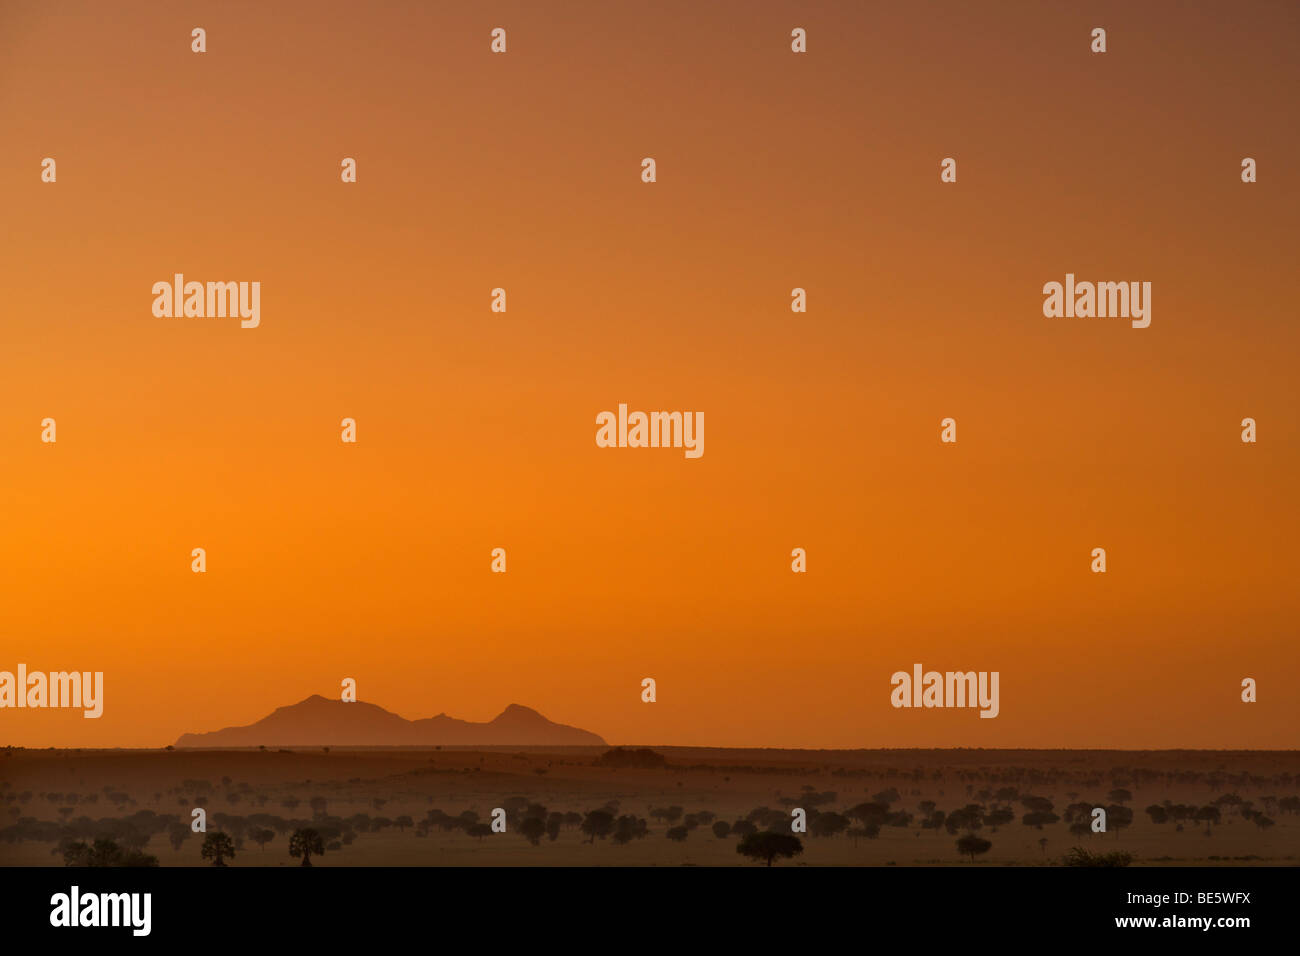 Mount Morungole seen from the Kidepo Valley National Park in northern Uganda at dawn. - Stock Image